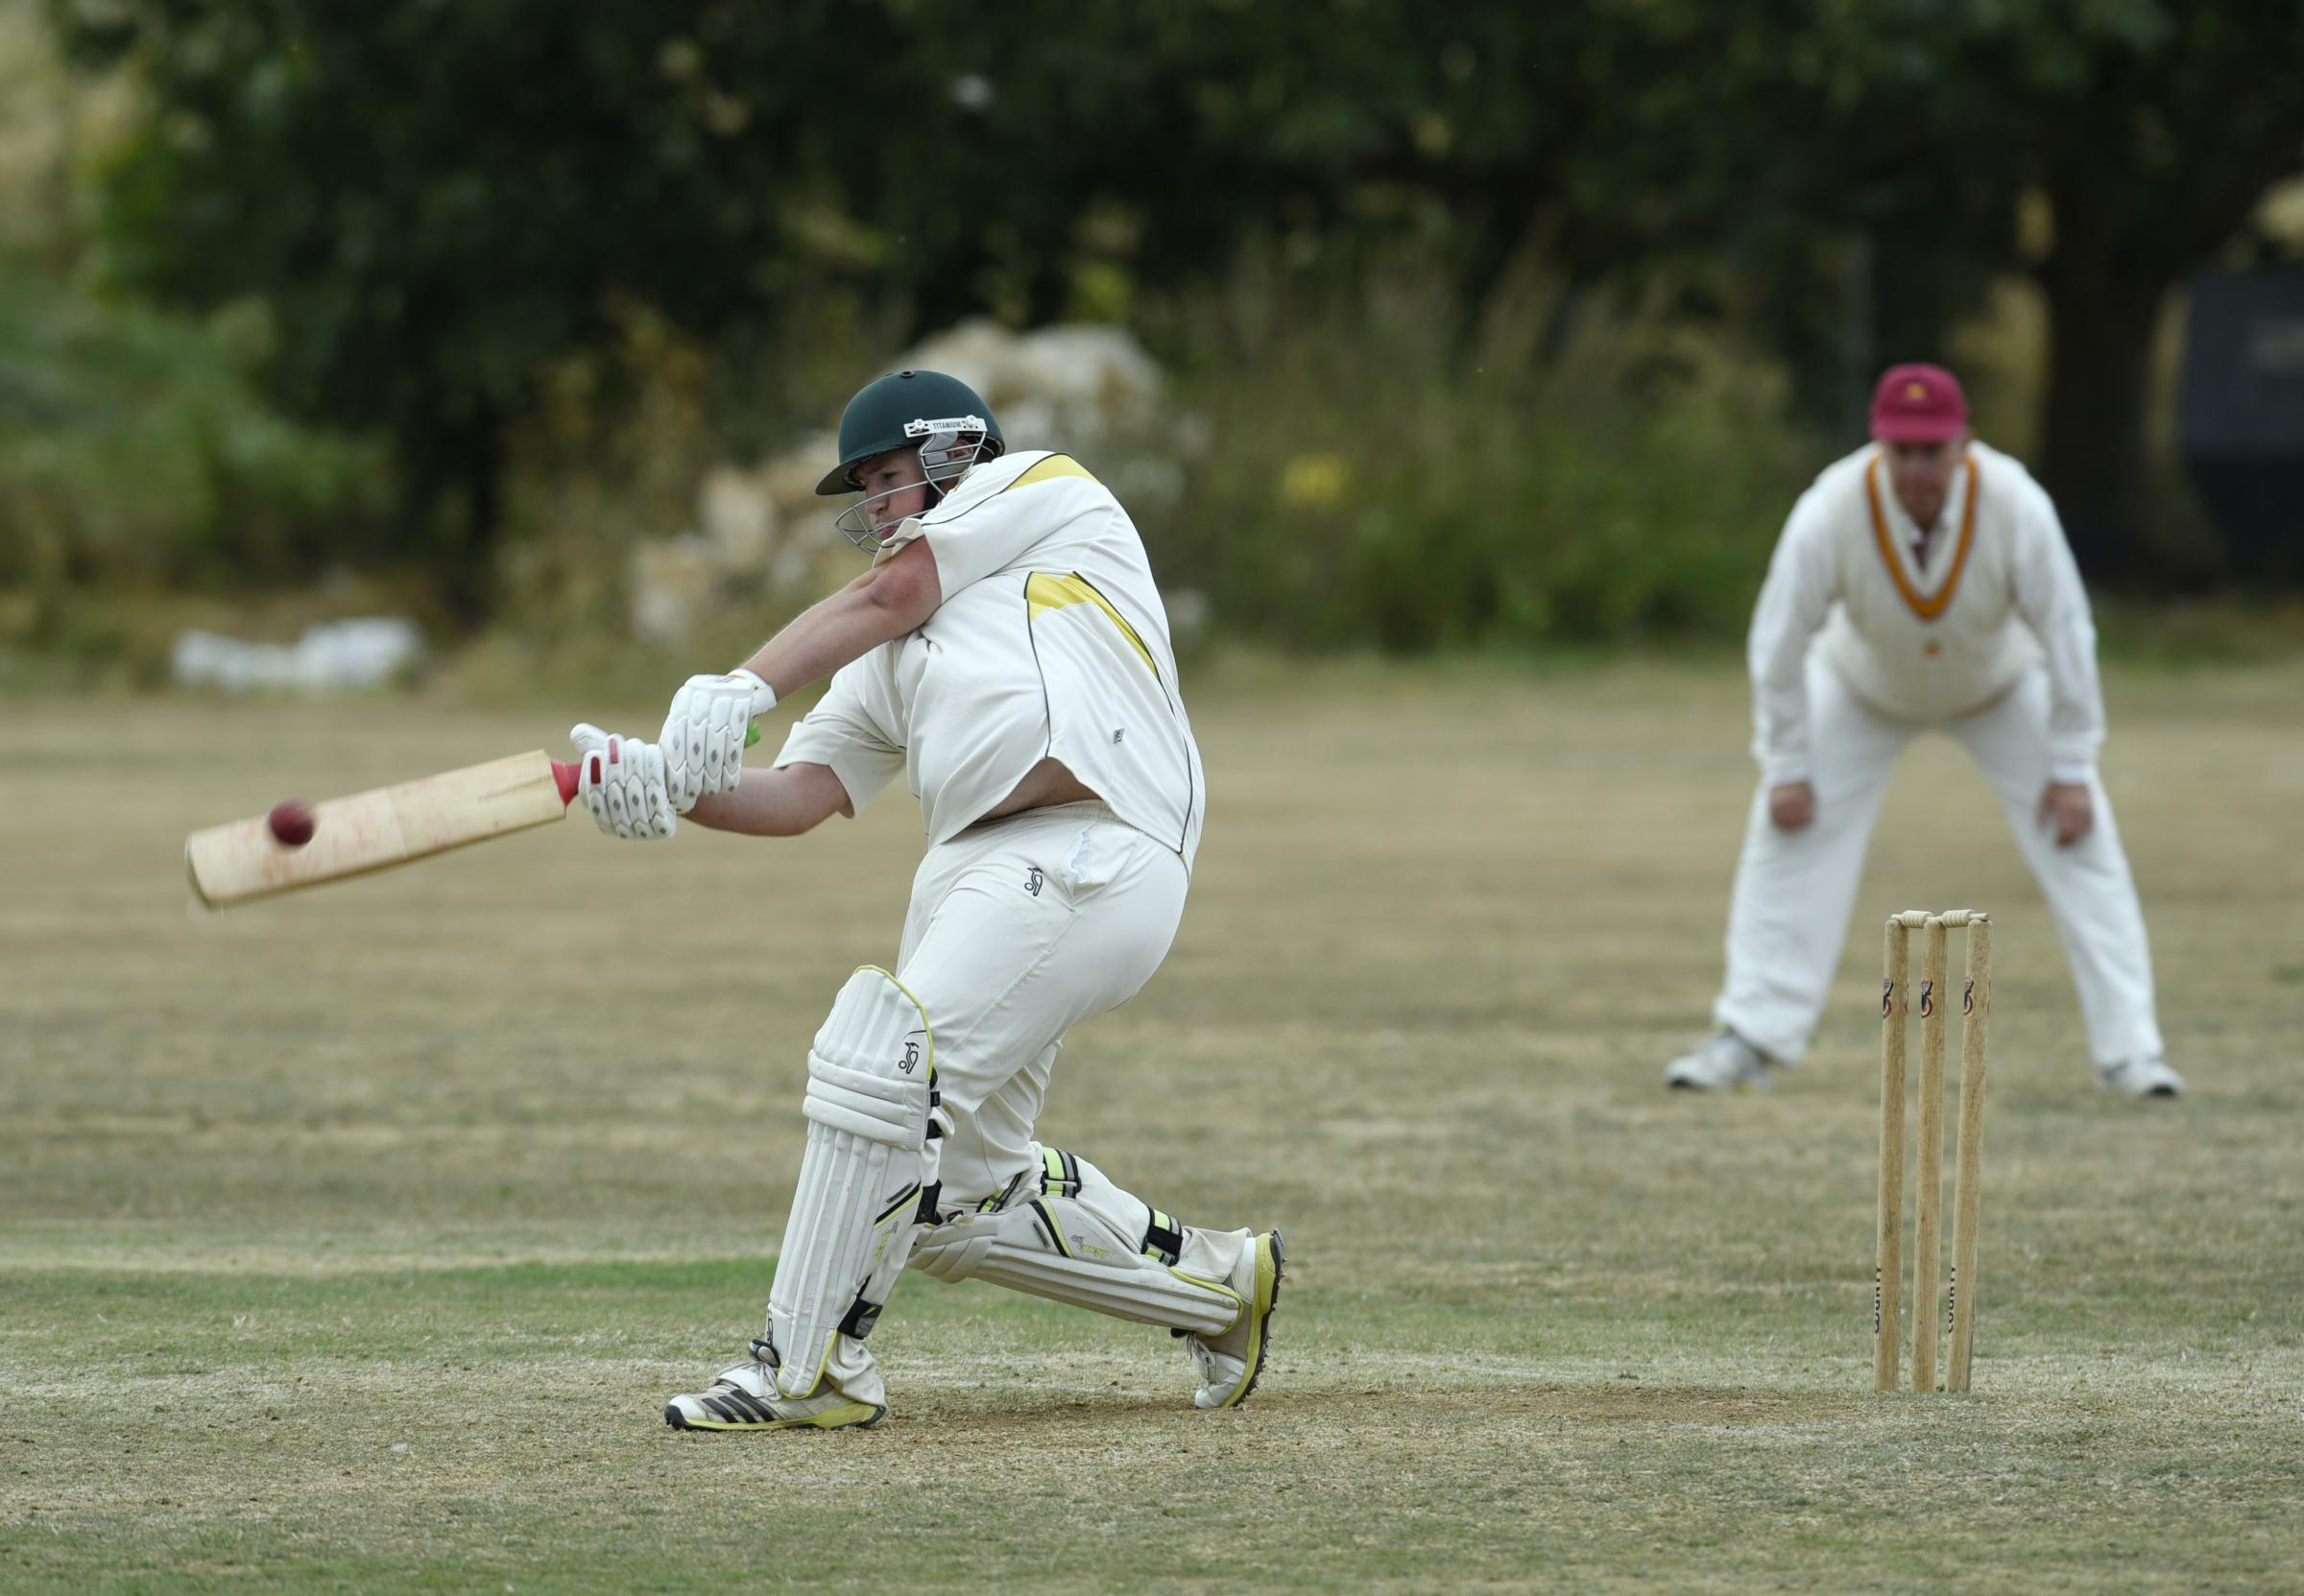 BIG HIT: Wantage's James Mabbett slams a six in the last over of their innings against Stanton Harcourt